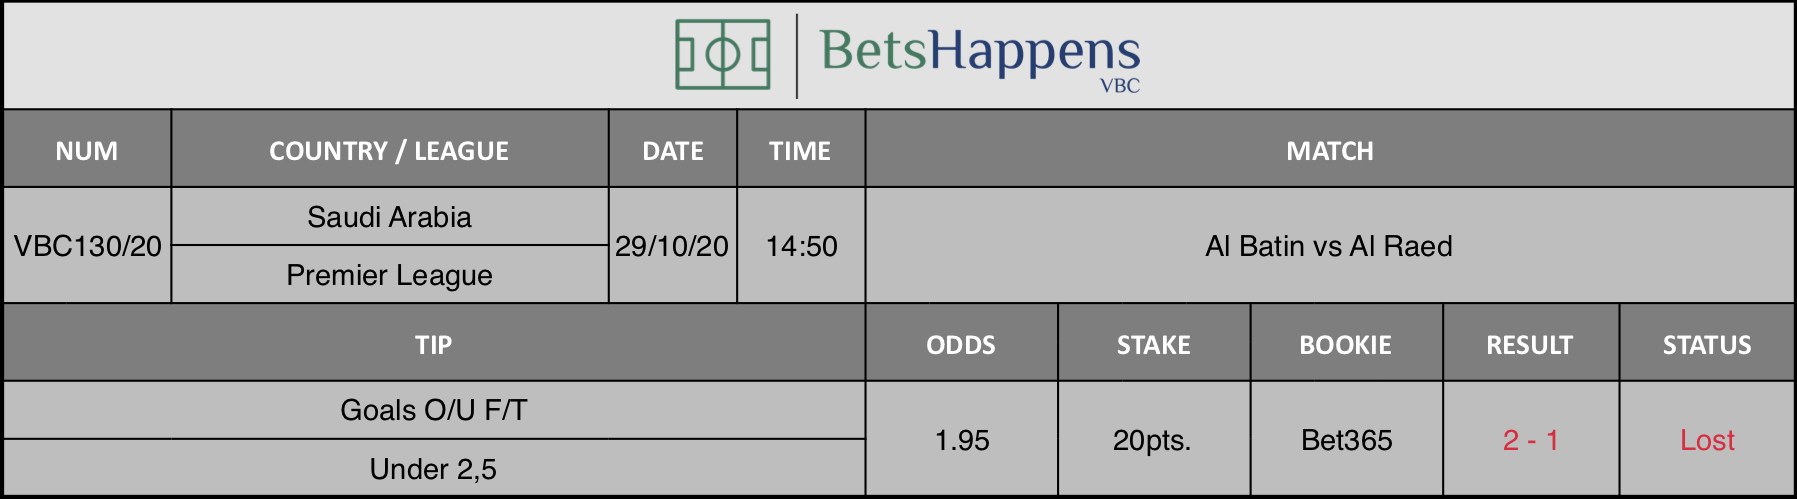 Results of our tip for the Al Batin vs Al Raed  match where Goals O/U F/T Under 2,5 is recommended.